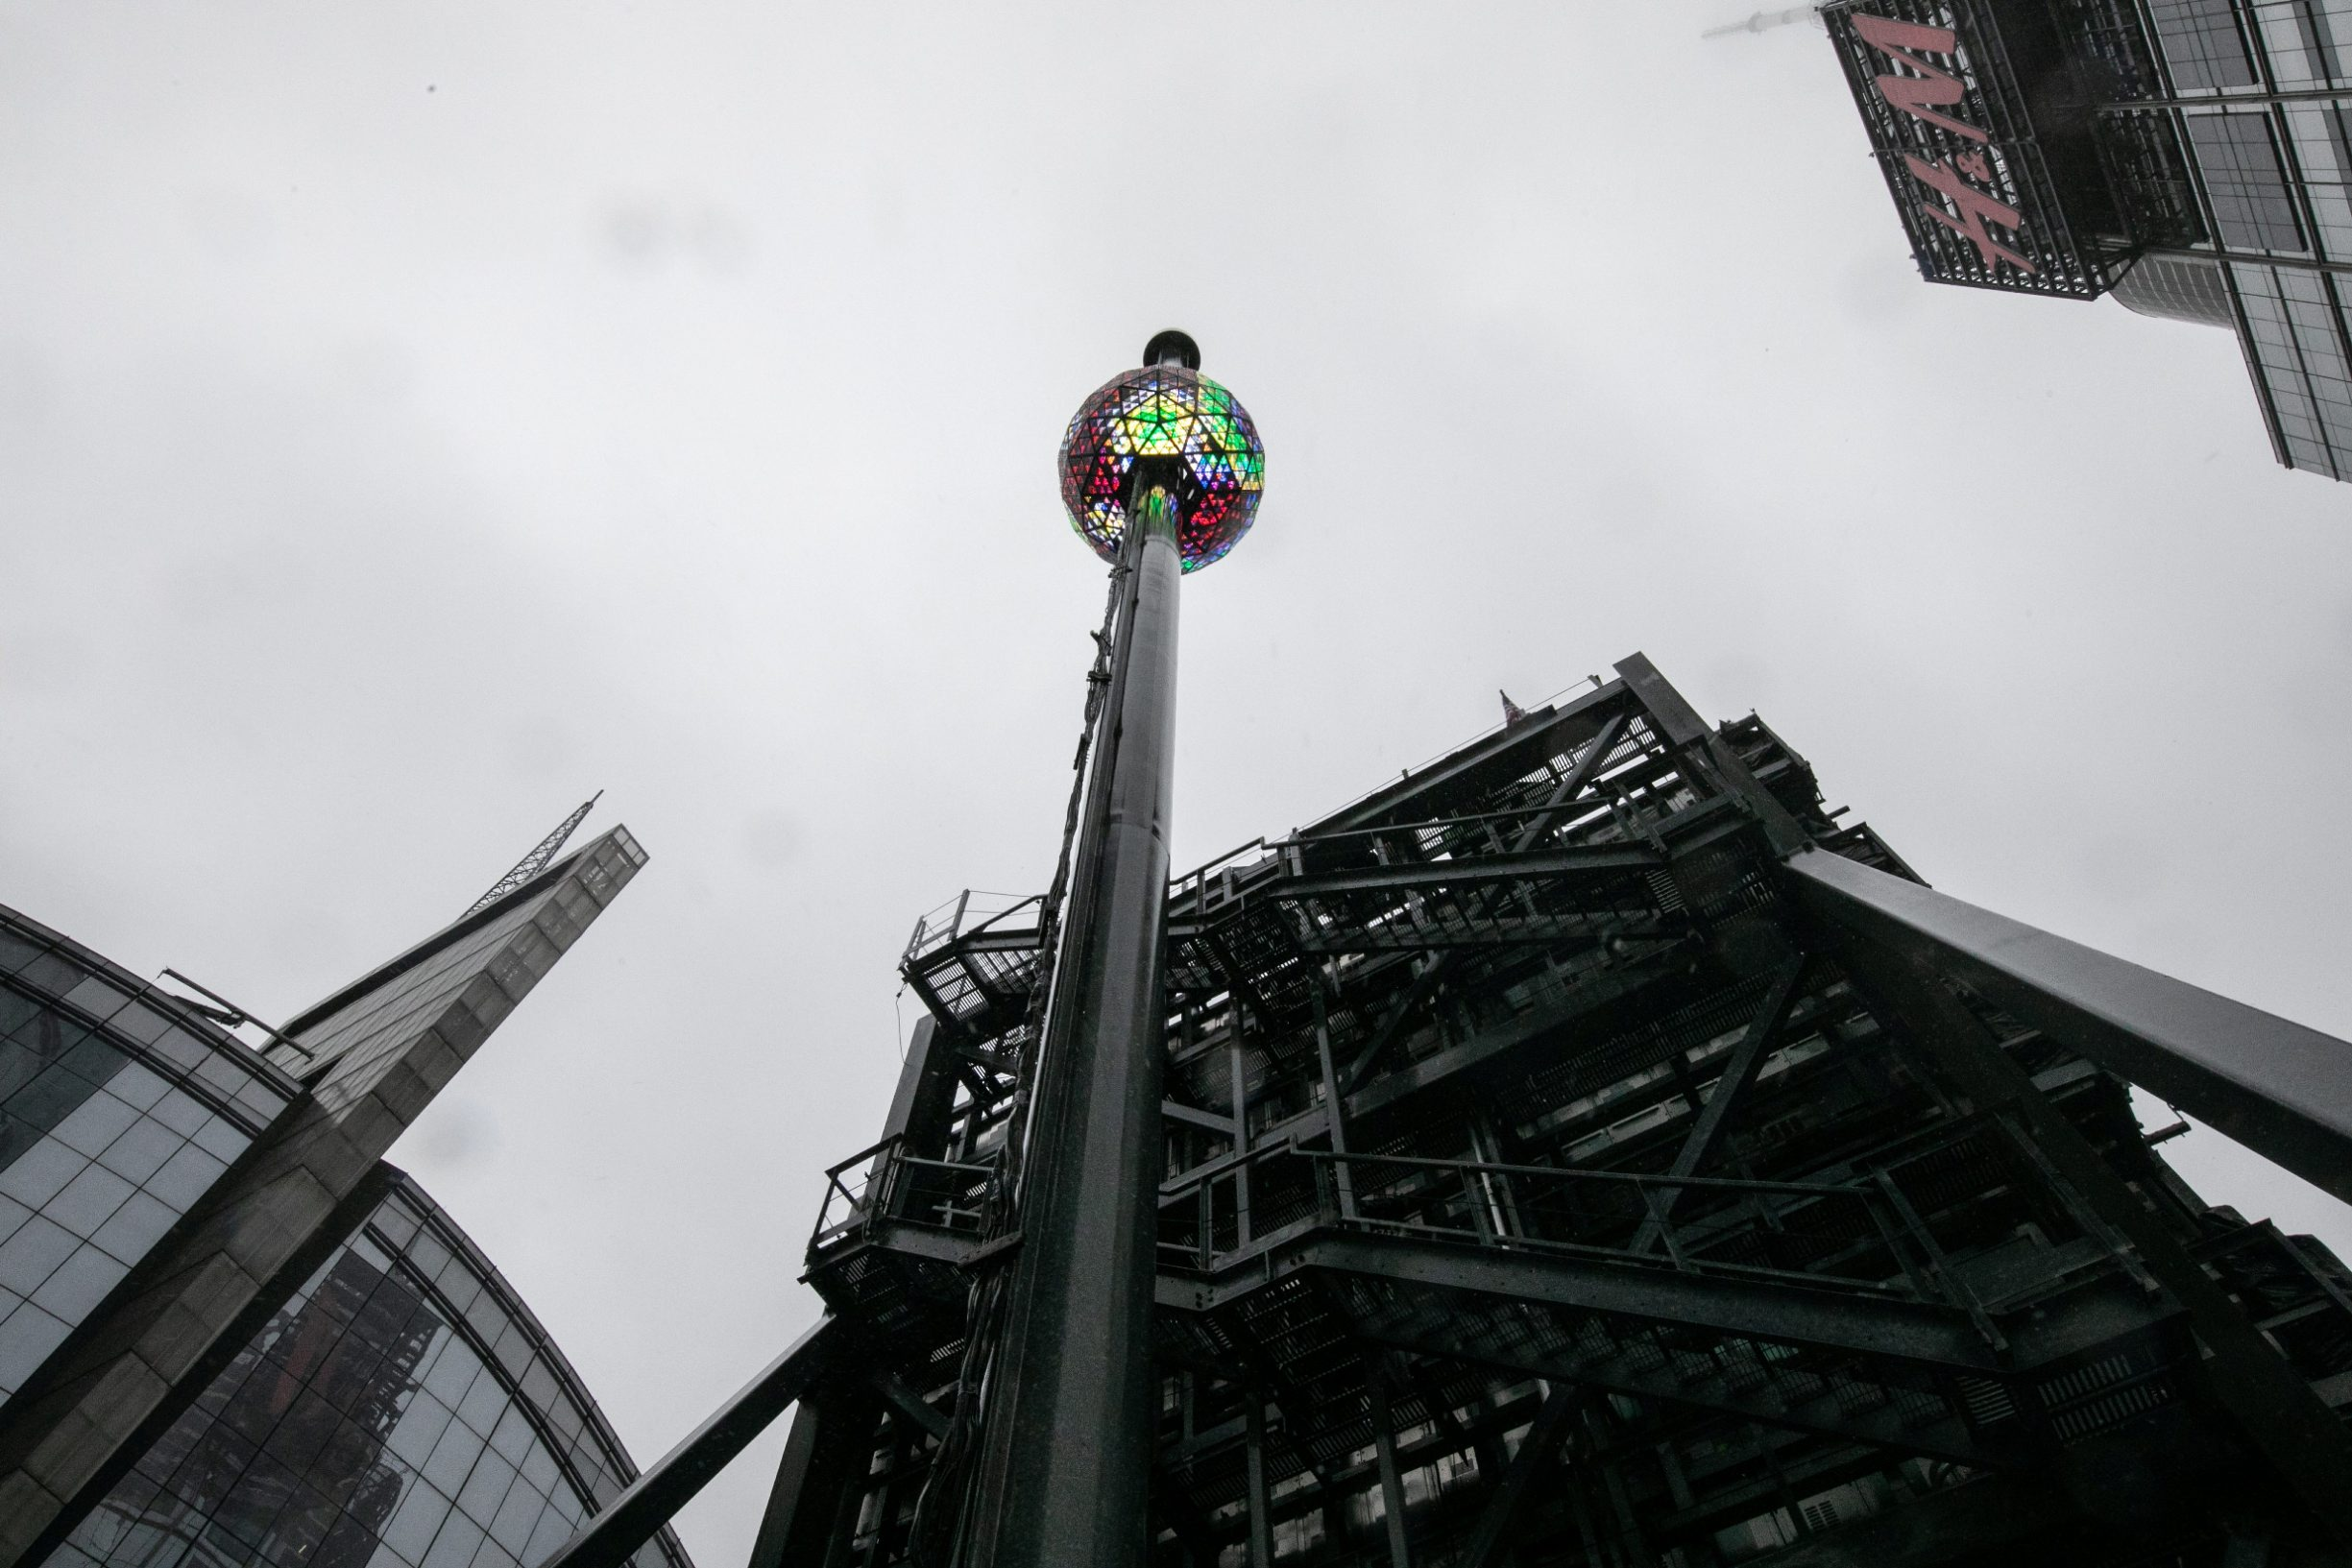 New Year's Eve ball is seen at the roof of One Times Square building during the New Year's Eve Ball test, before the official New Year Celebration at Times Square, Manhattan, New York, U.S., December 30, 2019. REUTERS/Jeenah Moon